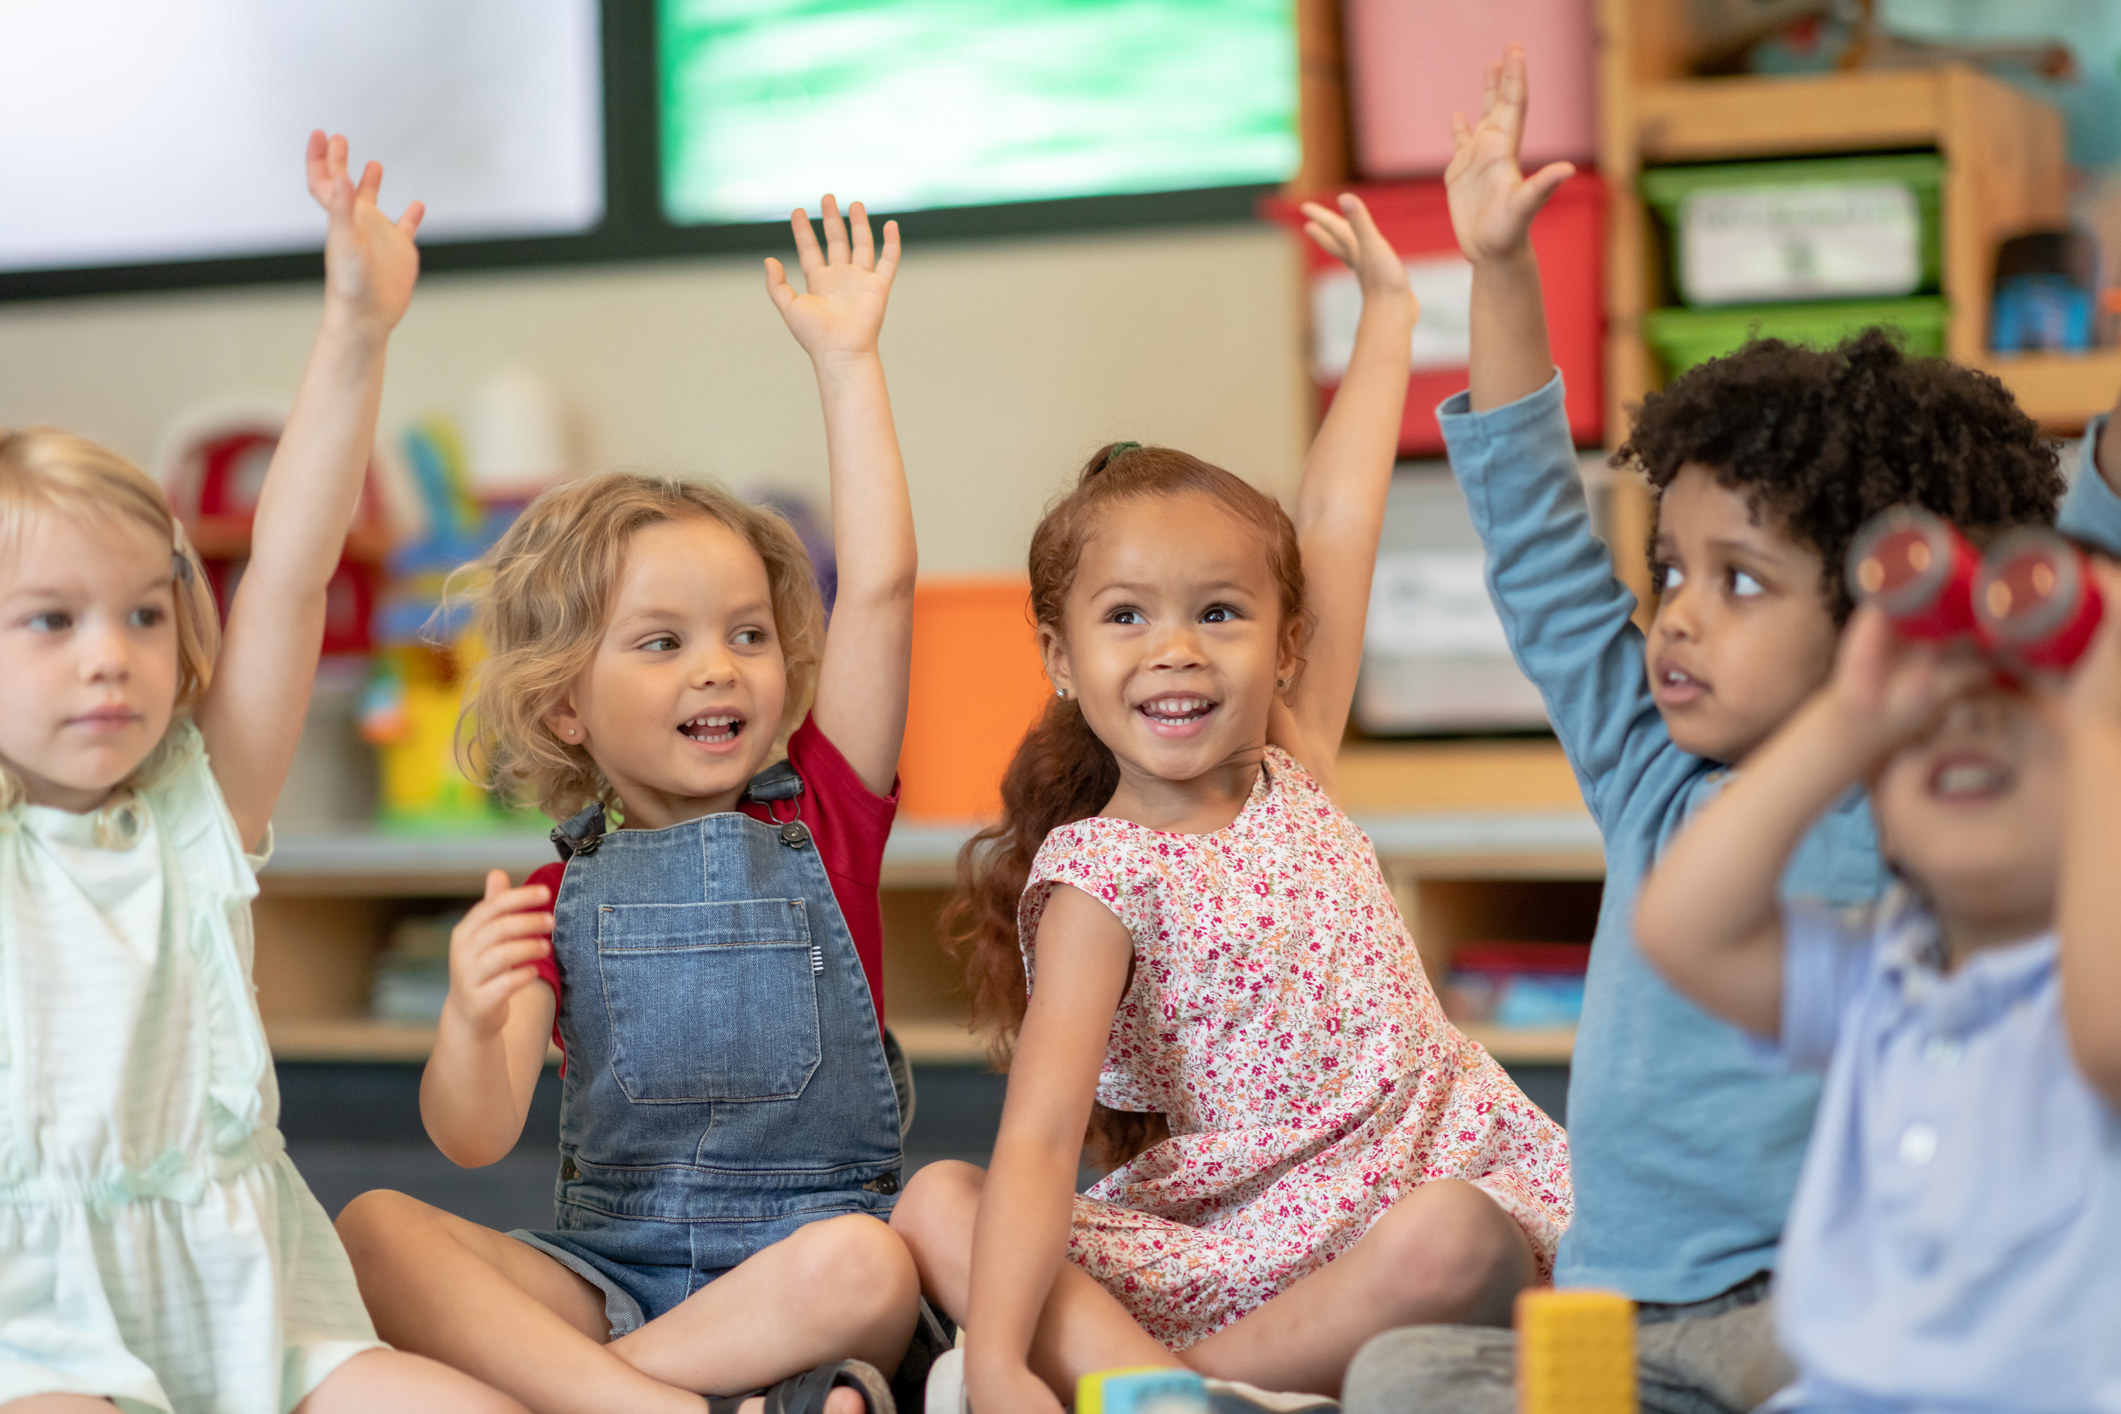 Multicultural children smile and raise hands in a classroom